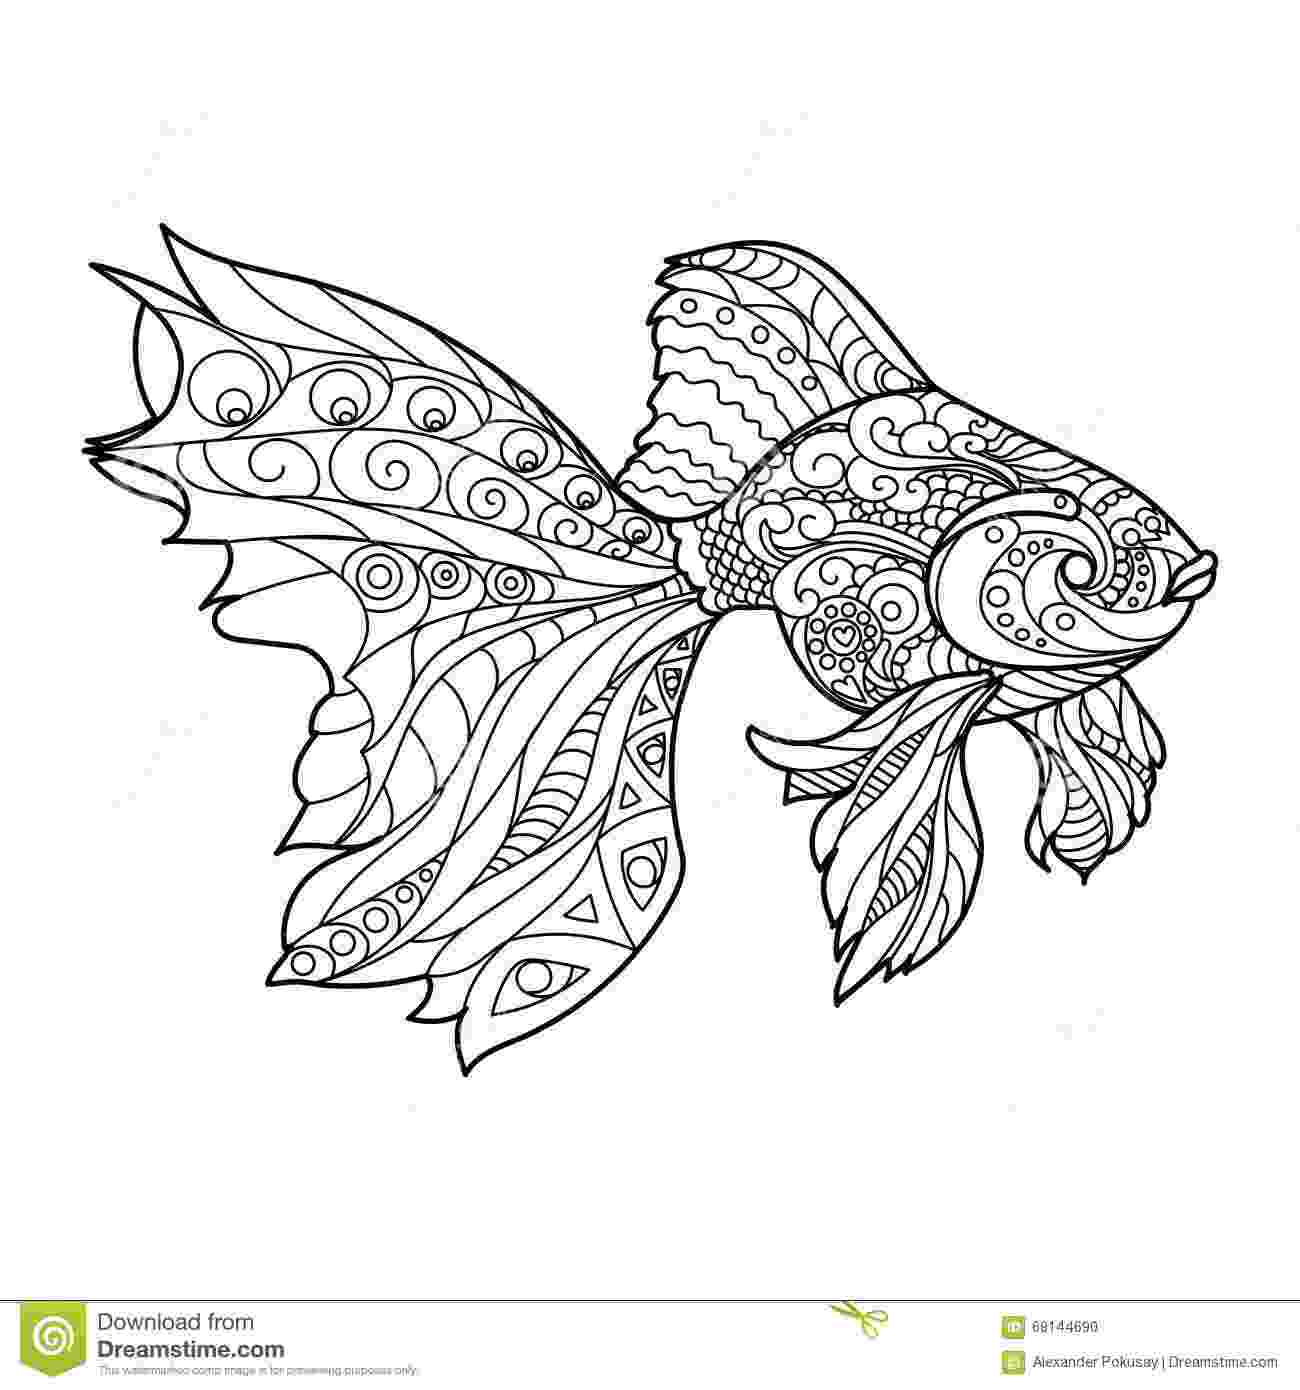 fish coloring pages for adults carp koi fish adult coloring page zentangle doodle coloring coloring for adults fish pages